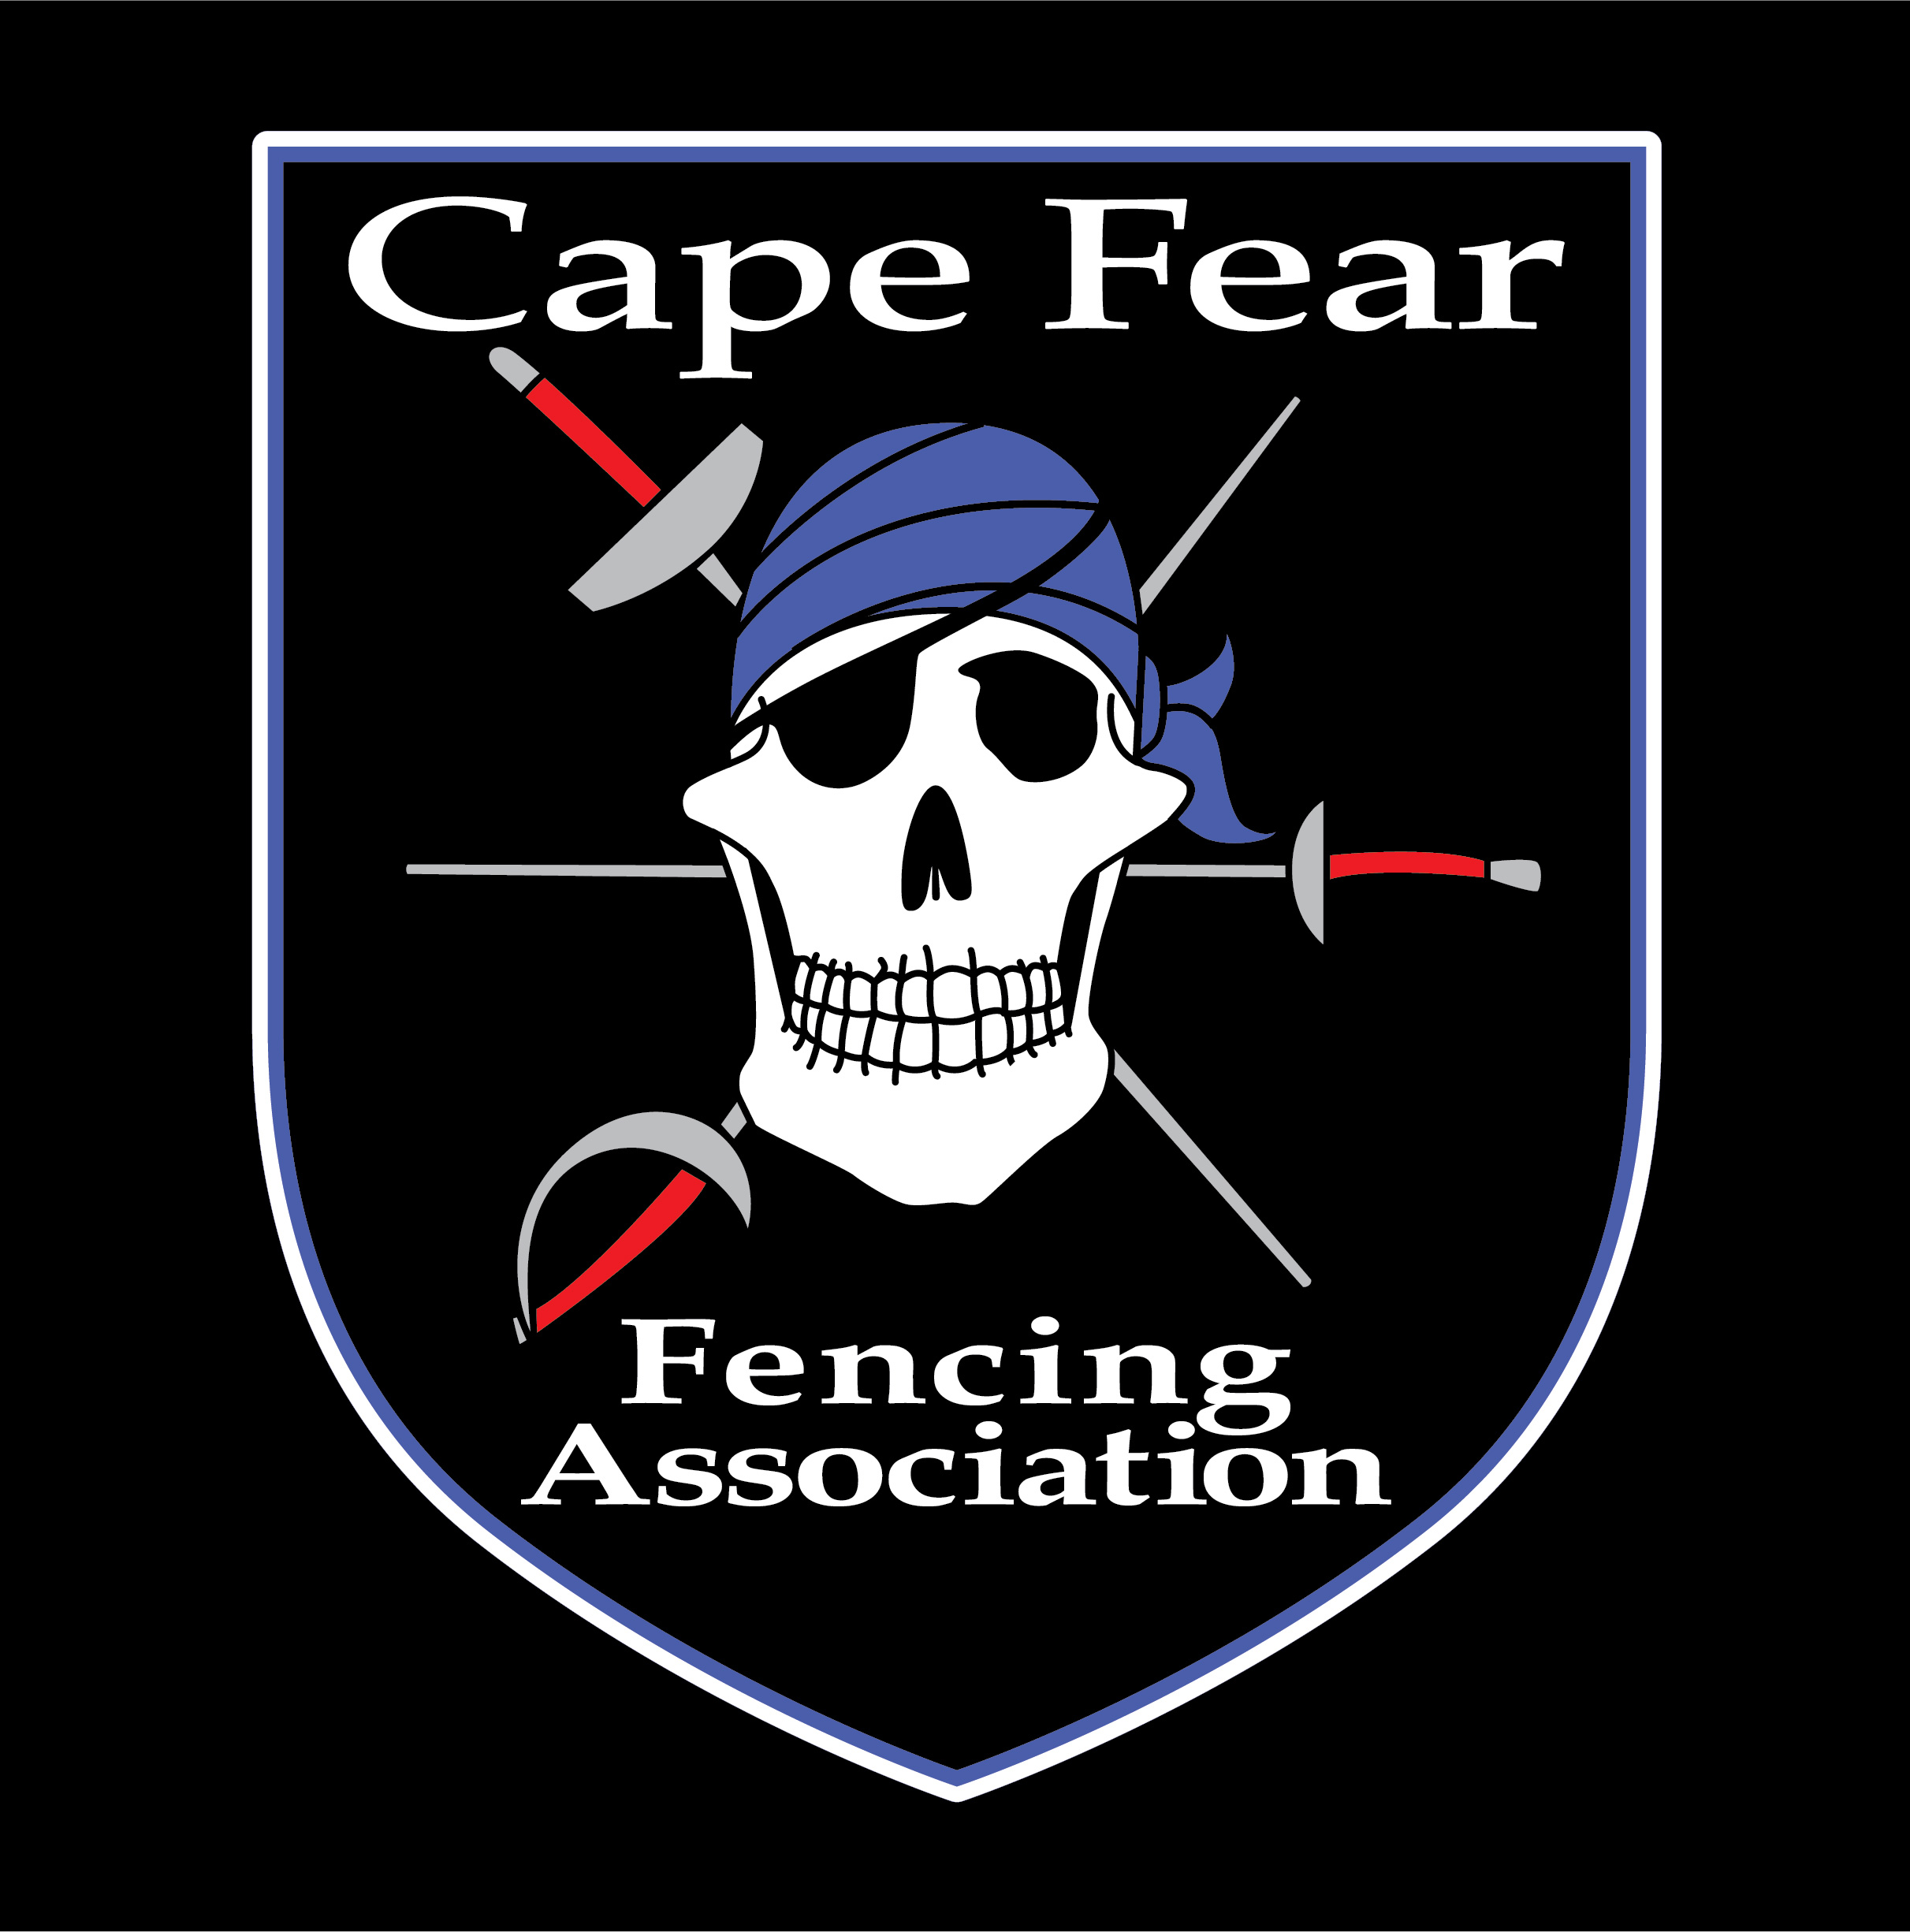 Cape Fear Fencing Association